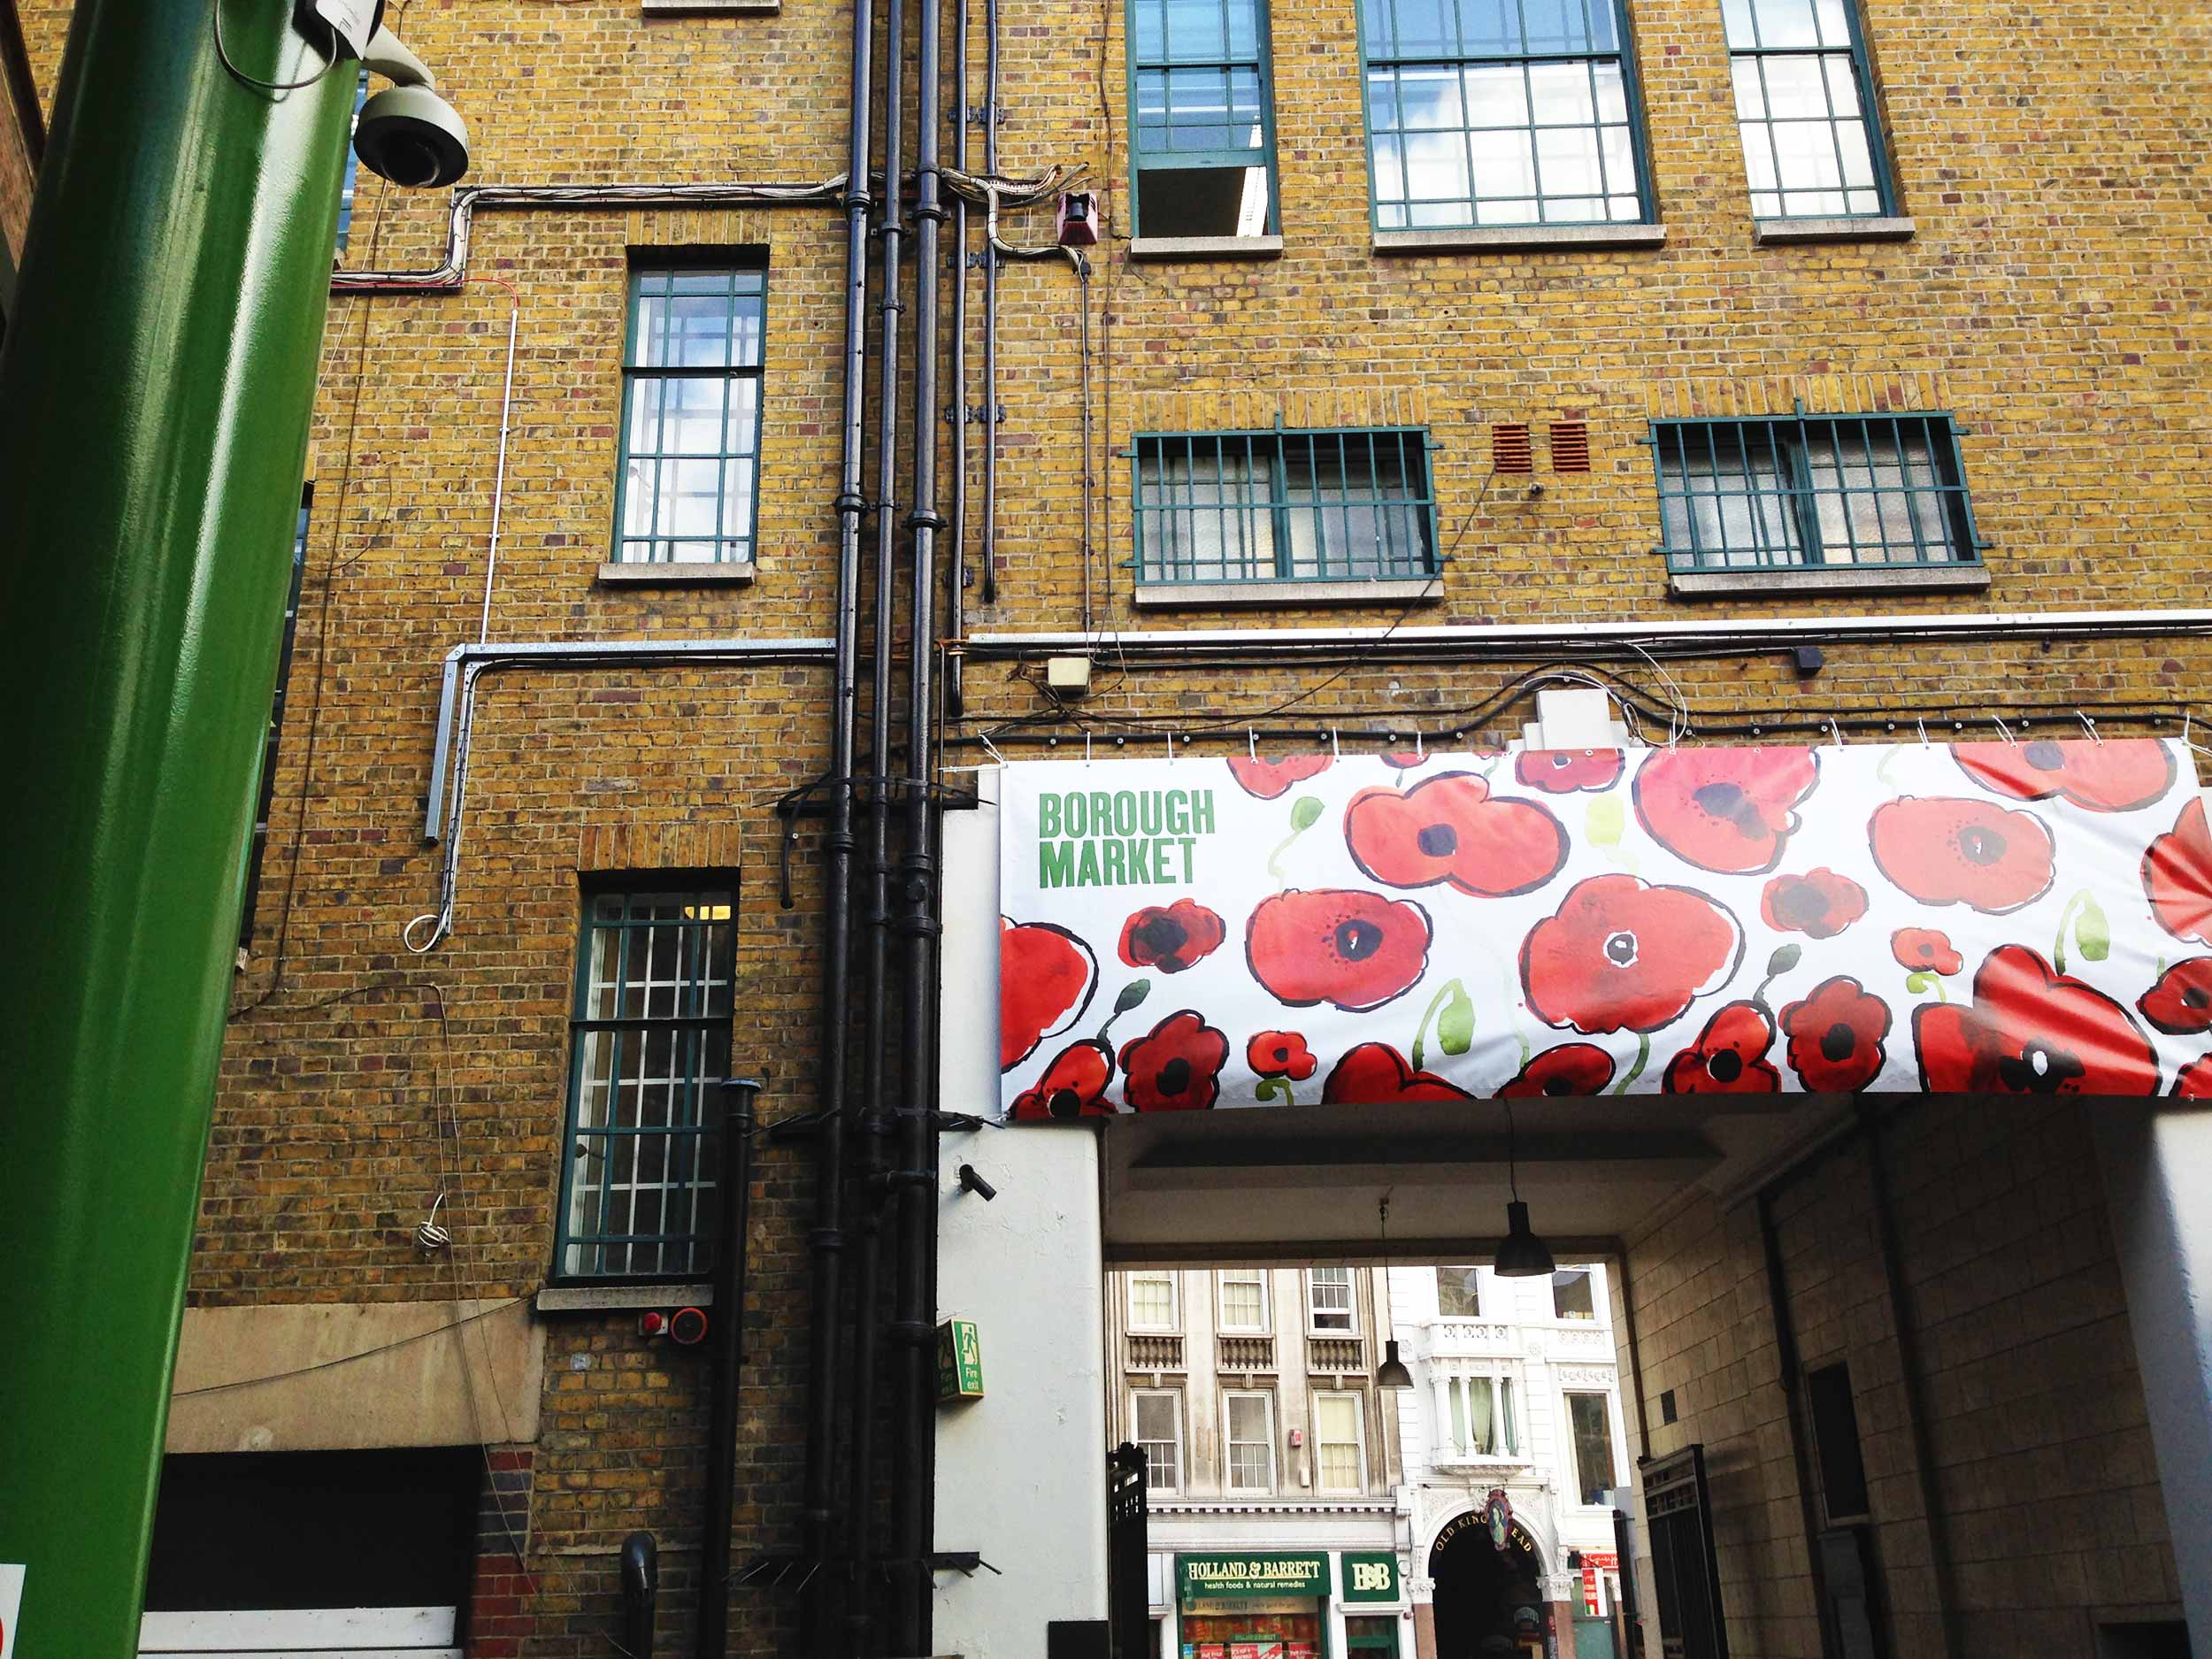 More Borough Market by James Oses, image 12